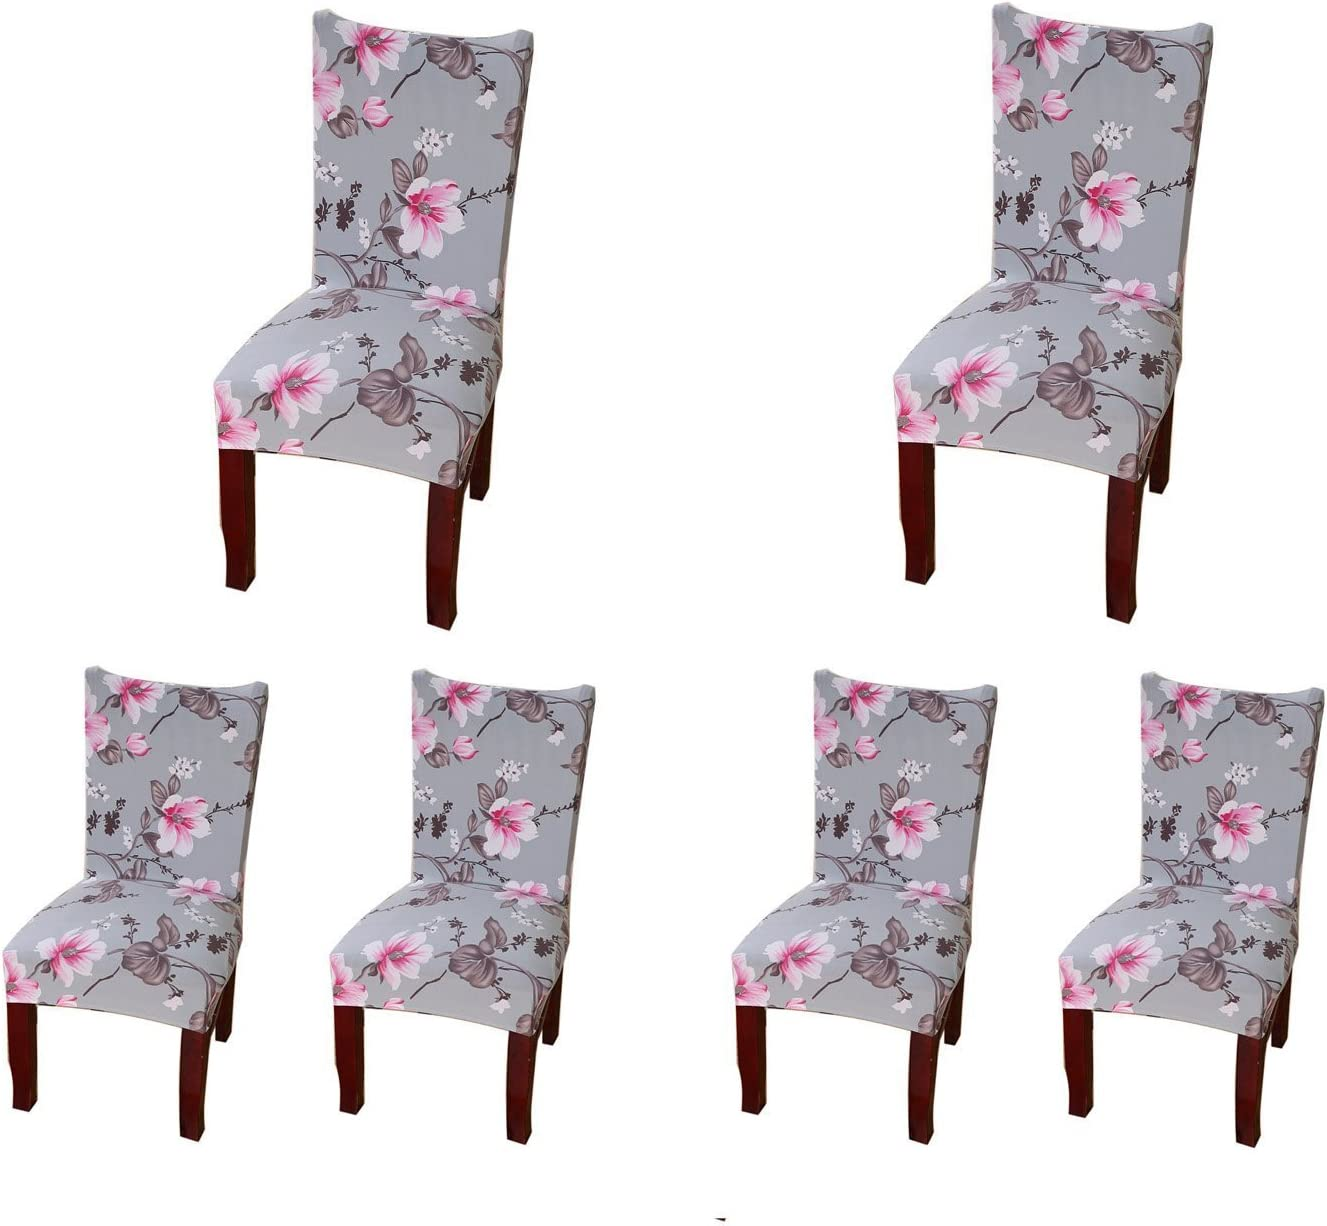 SoulFeel 6 x Soft Fit Stretchable Dining Chair Covers with Printed Floral Patterns, Spandex Banquet Chair Seat Protector Slipcovers for Holiday Home Party, Hotel, Wedding Ceremony (Style 31, Floral)